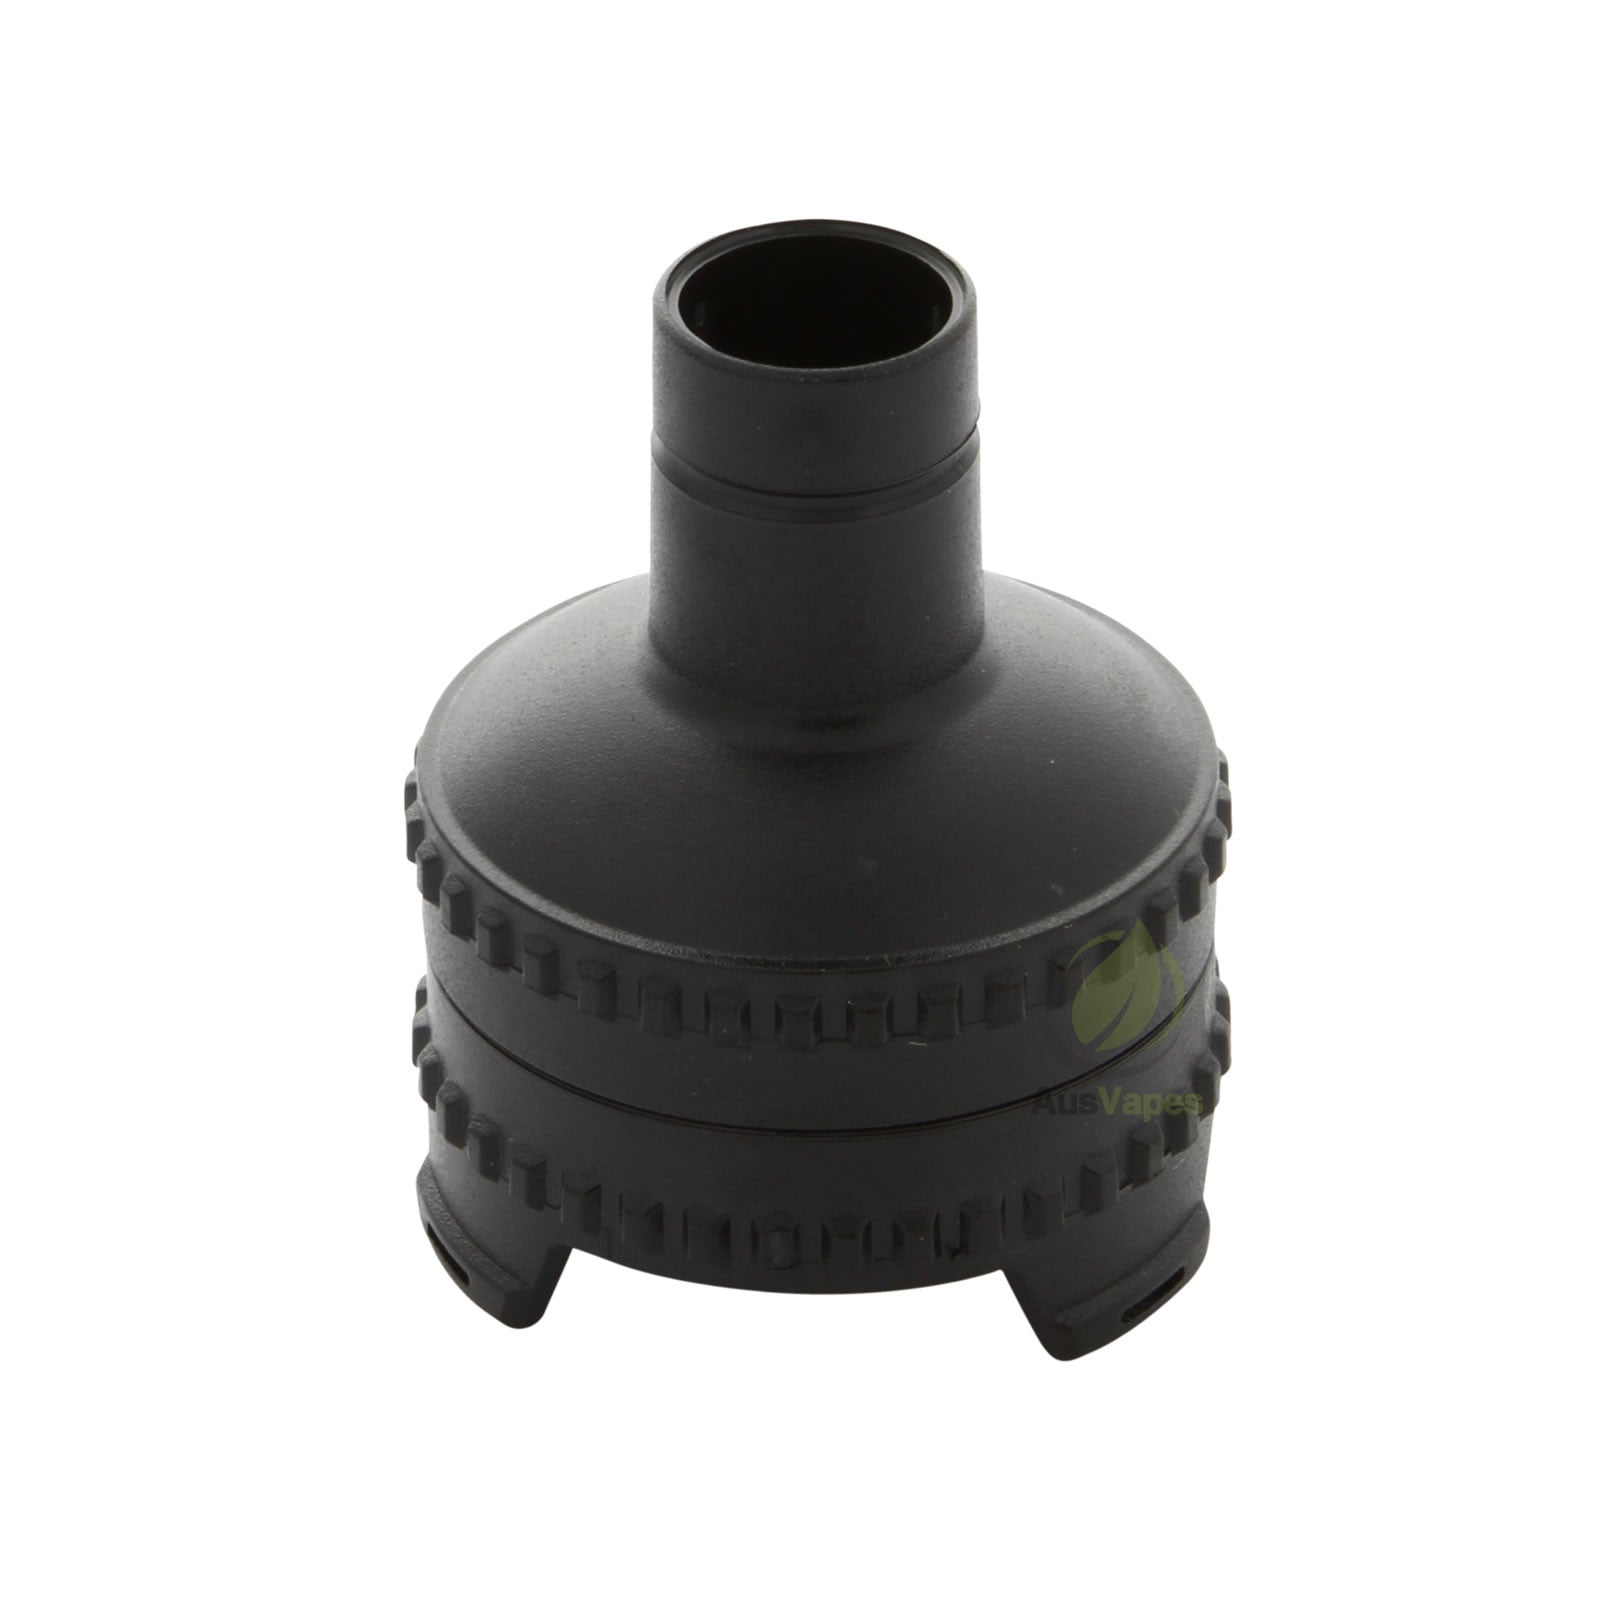 Volcano Vaporizer Easy Valve Filling Chamber Housing